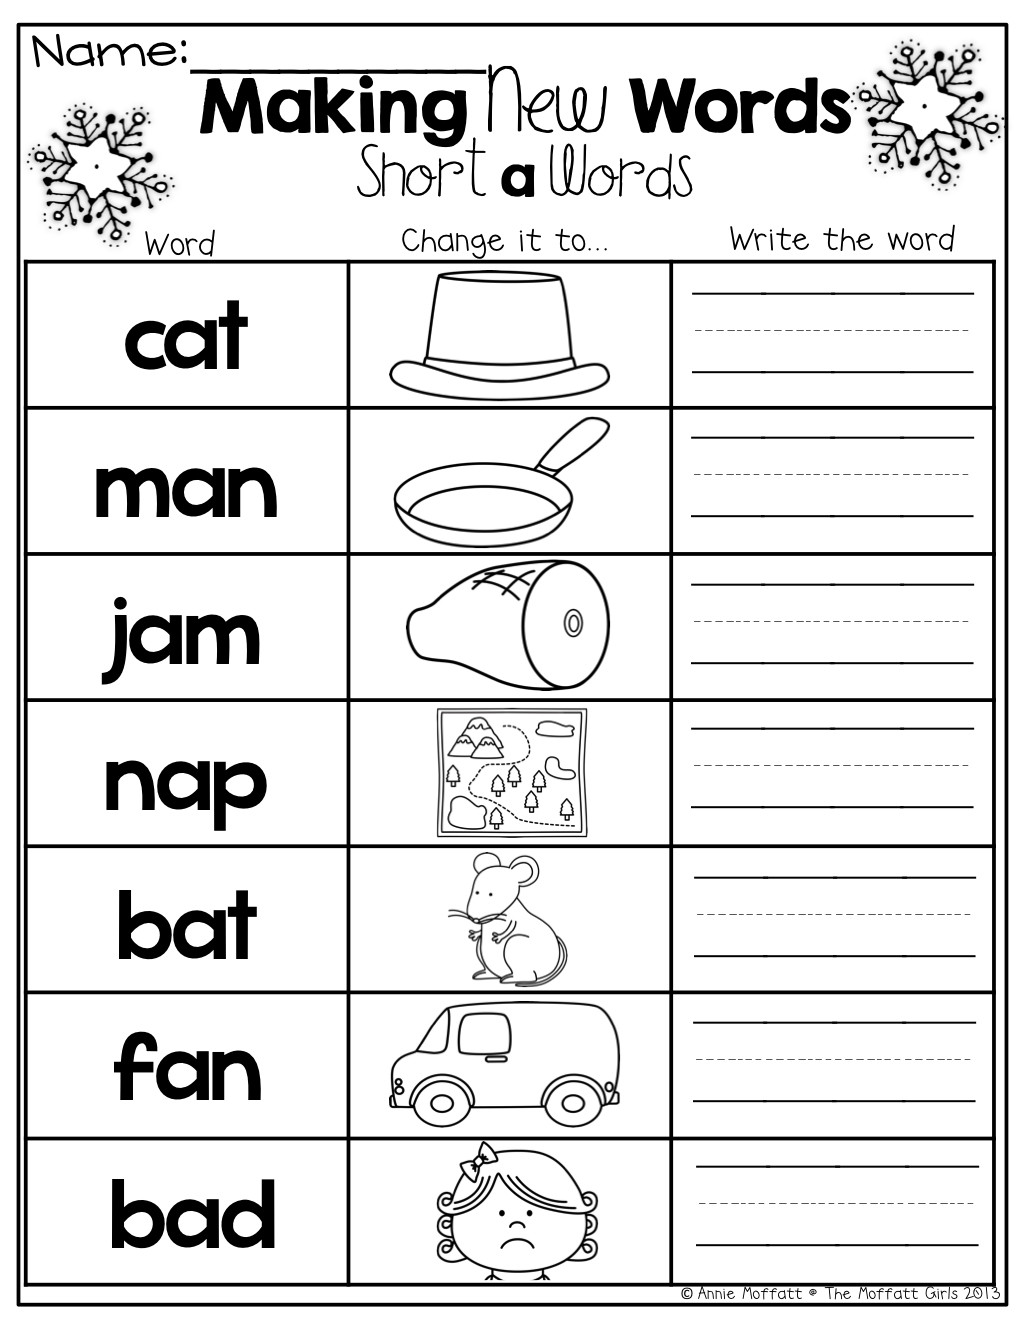 Inflected Endings Worksheets 2nd Grade Ed Ing Ending Worksheets